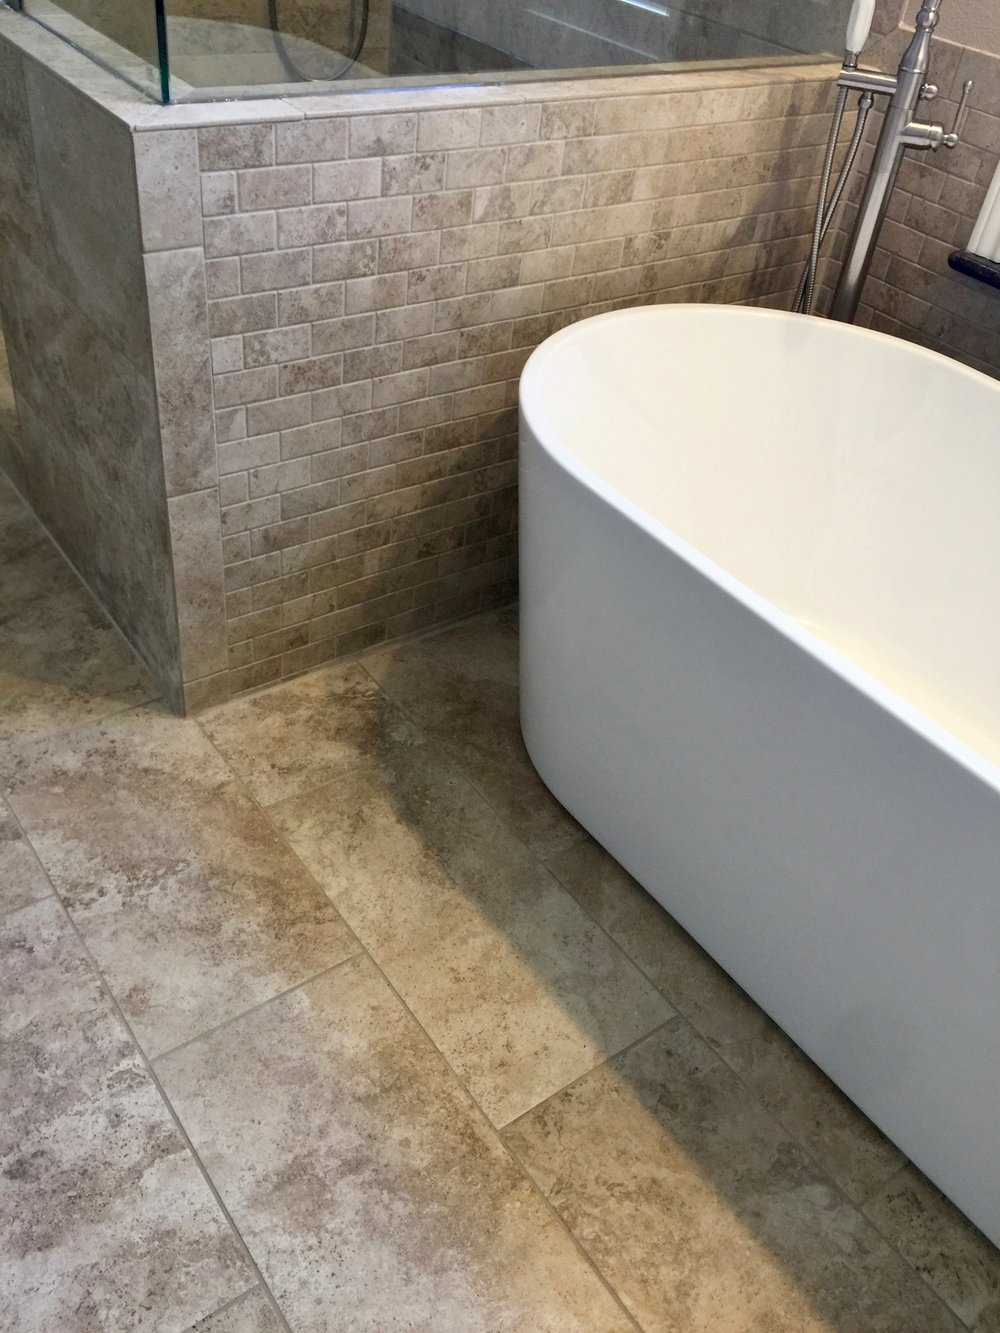 12x24 tile floors in matching tile with classic white stand alone tub.